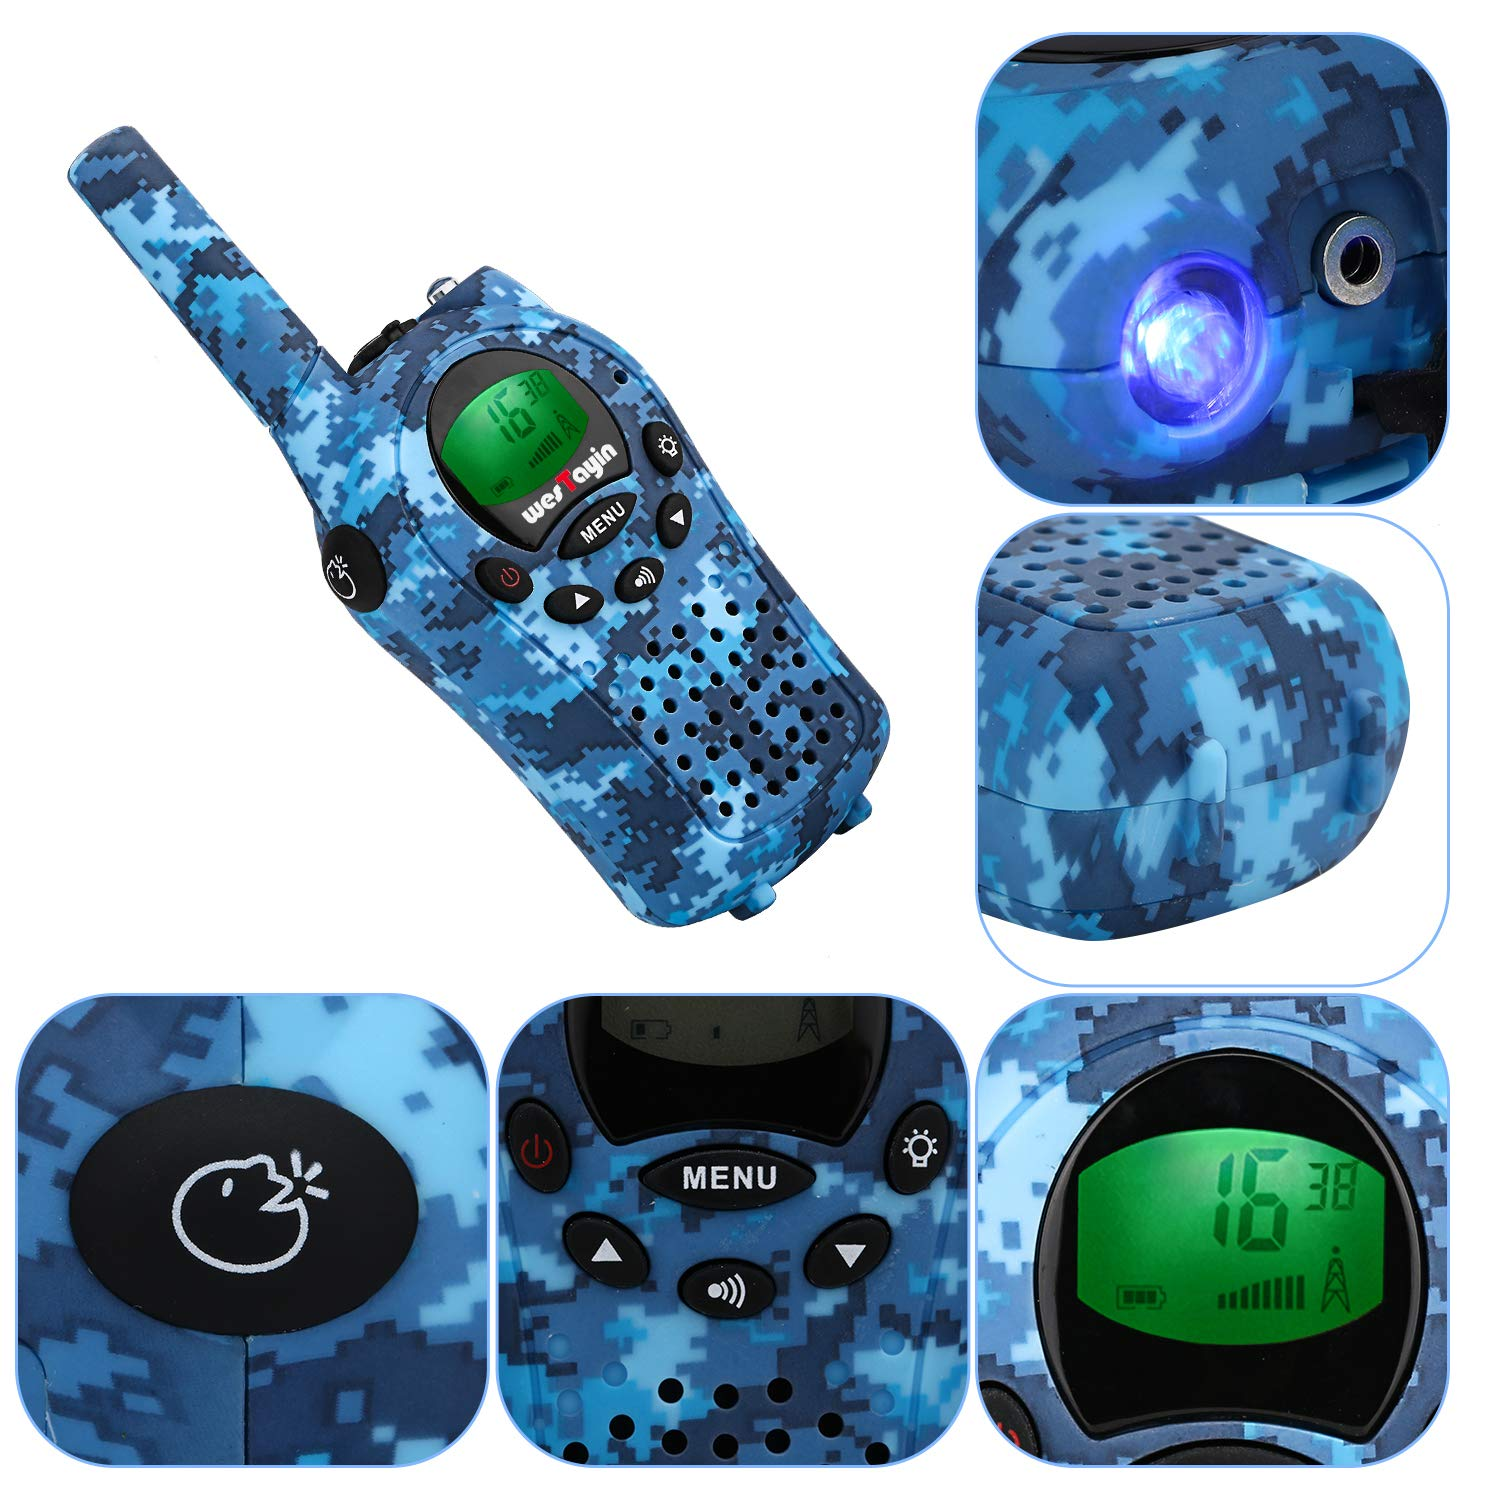 Walkie Talkies for kids, Kids Walkie Talkies for Girls and Boys , Vox Hands Free 4 Miles Long Range Walkie Talkie Set with Cystal Sound and LED Flashlight, Best Kids Toys Gifts for Christmas Birthday by WES TAYIN (Image #5)